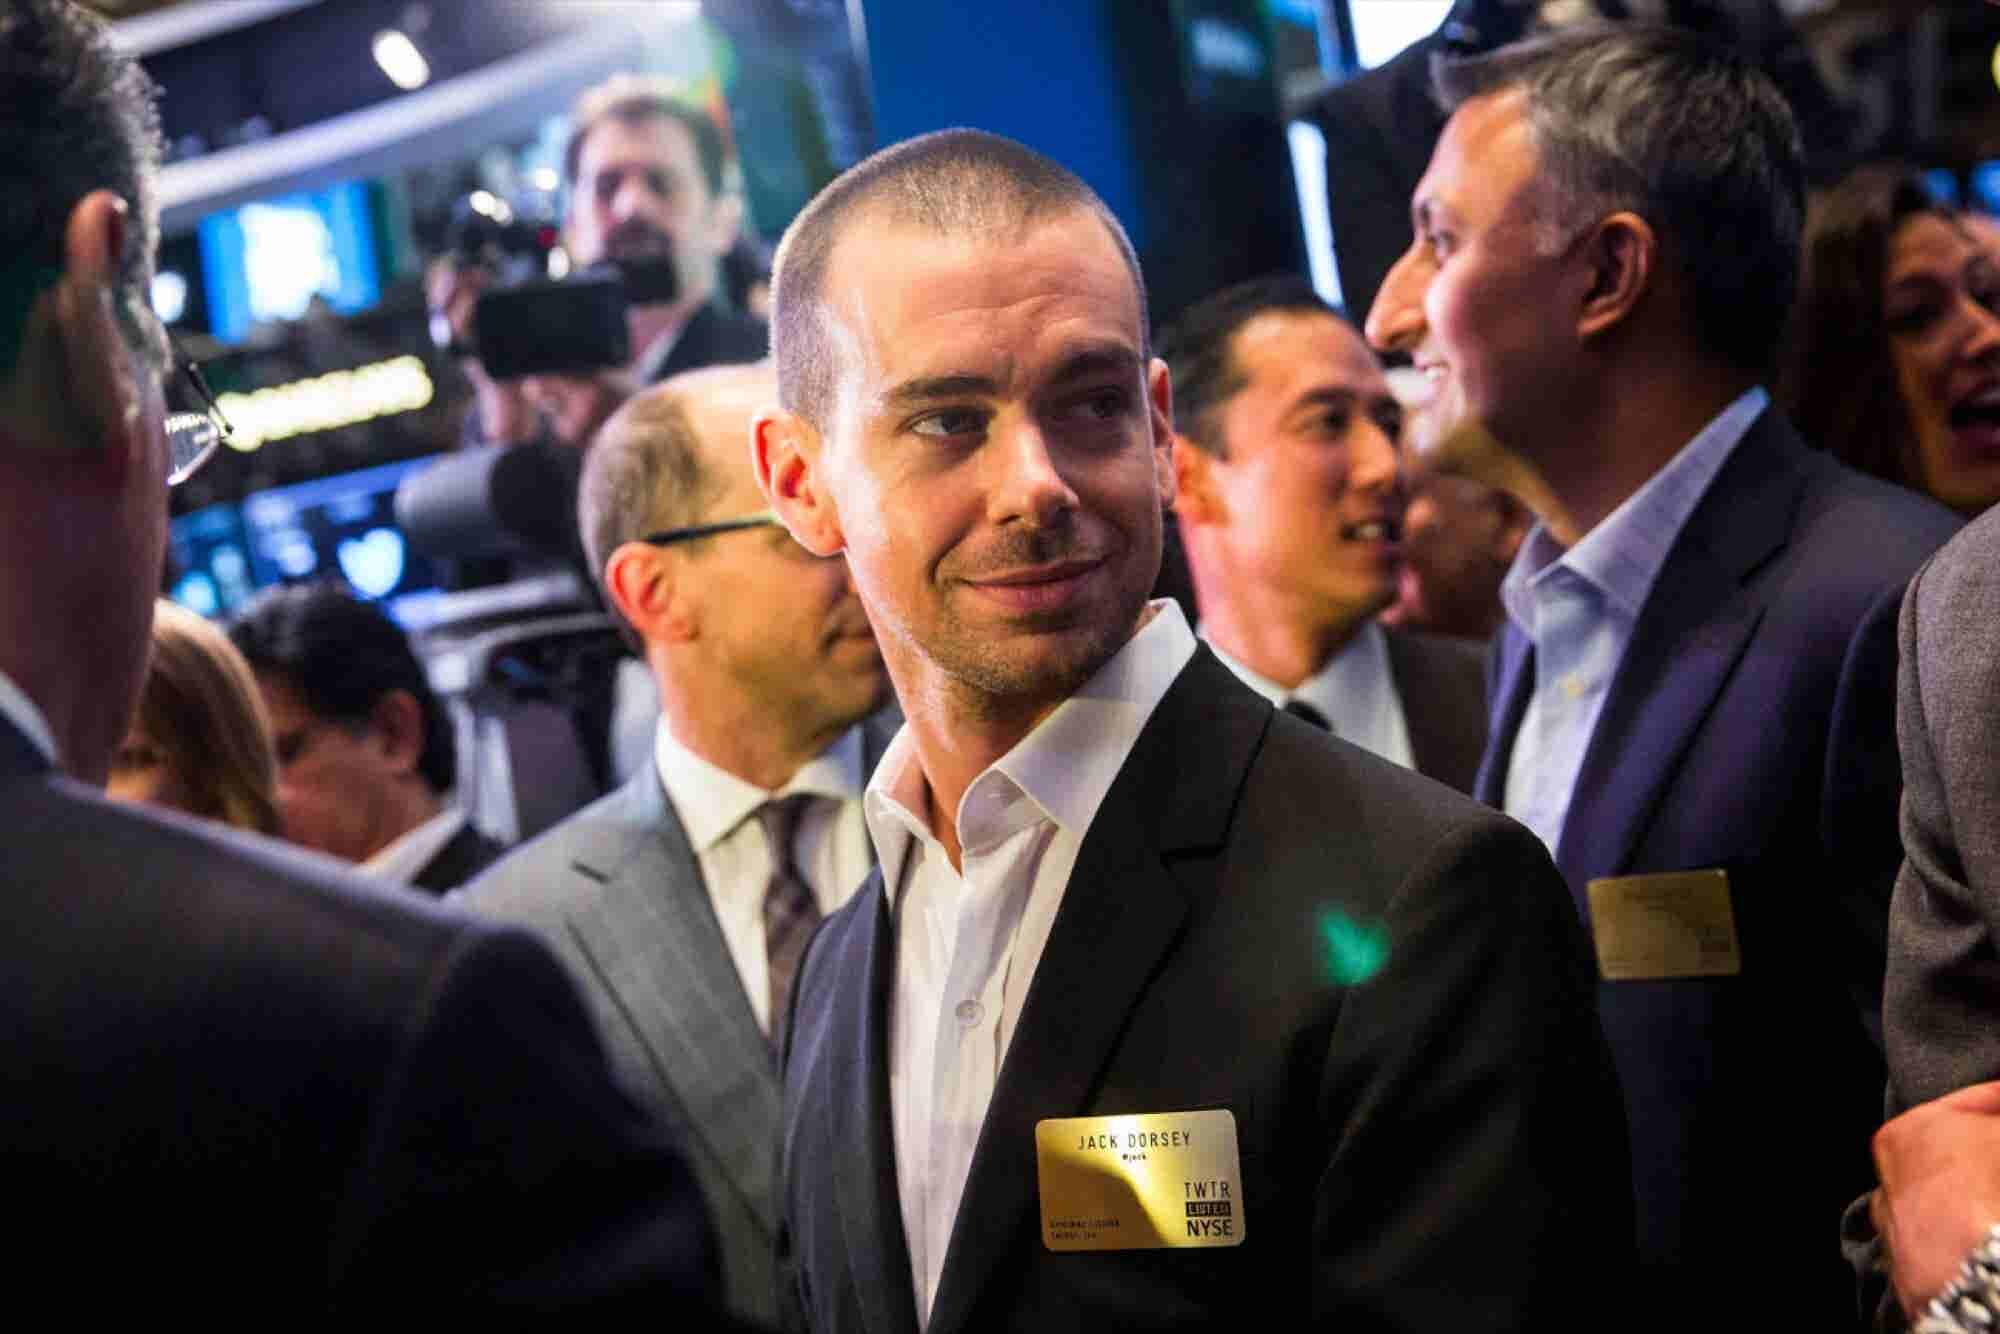 Twitter Shareholders Will Vote on Turning the Company Into a Cooperative Owned by its Users